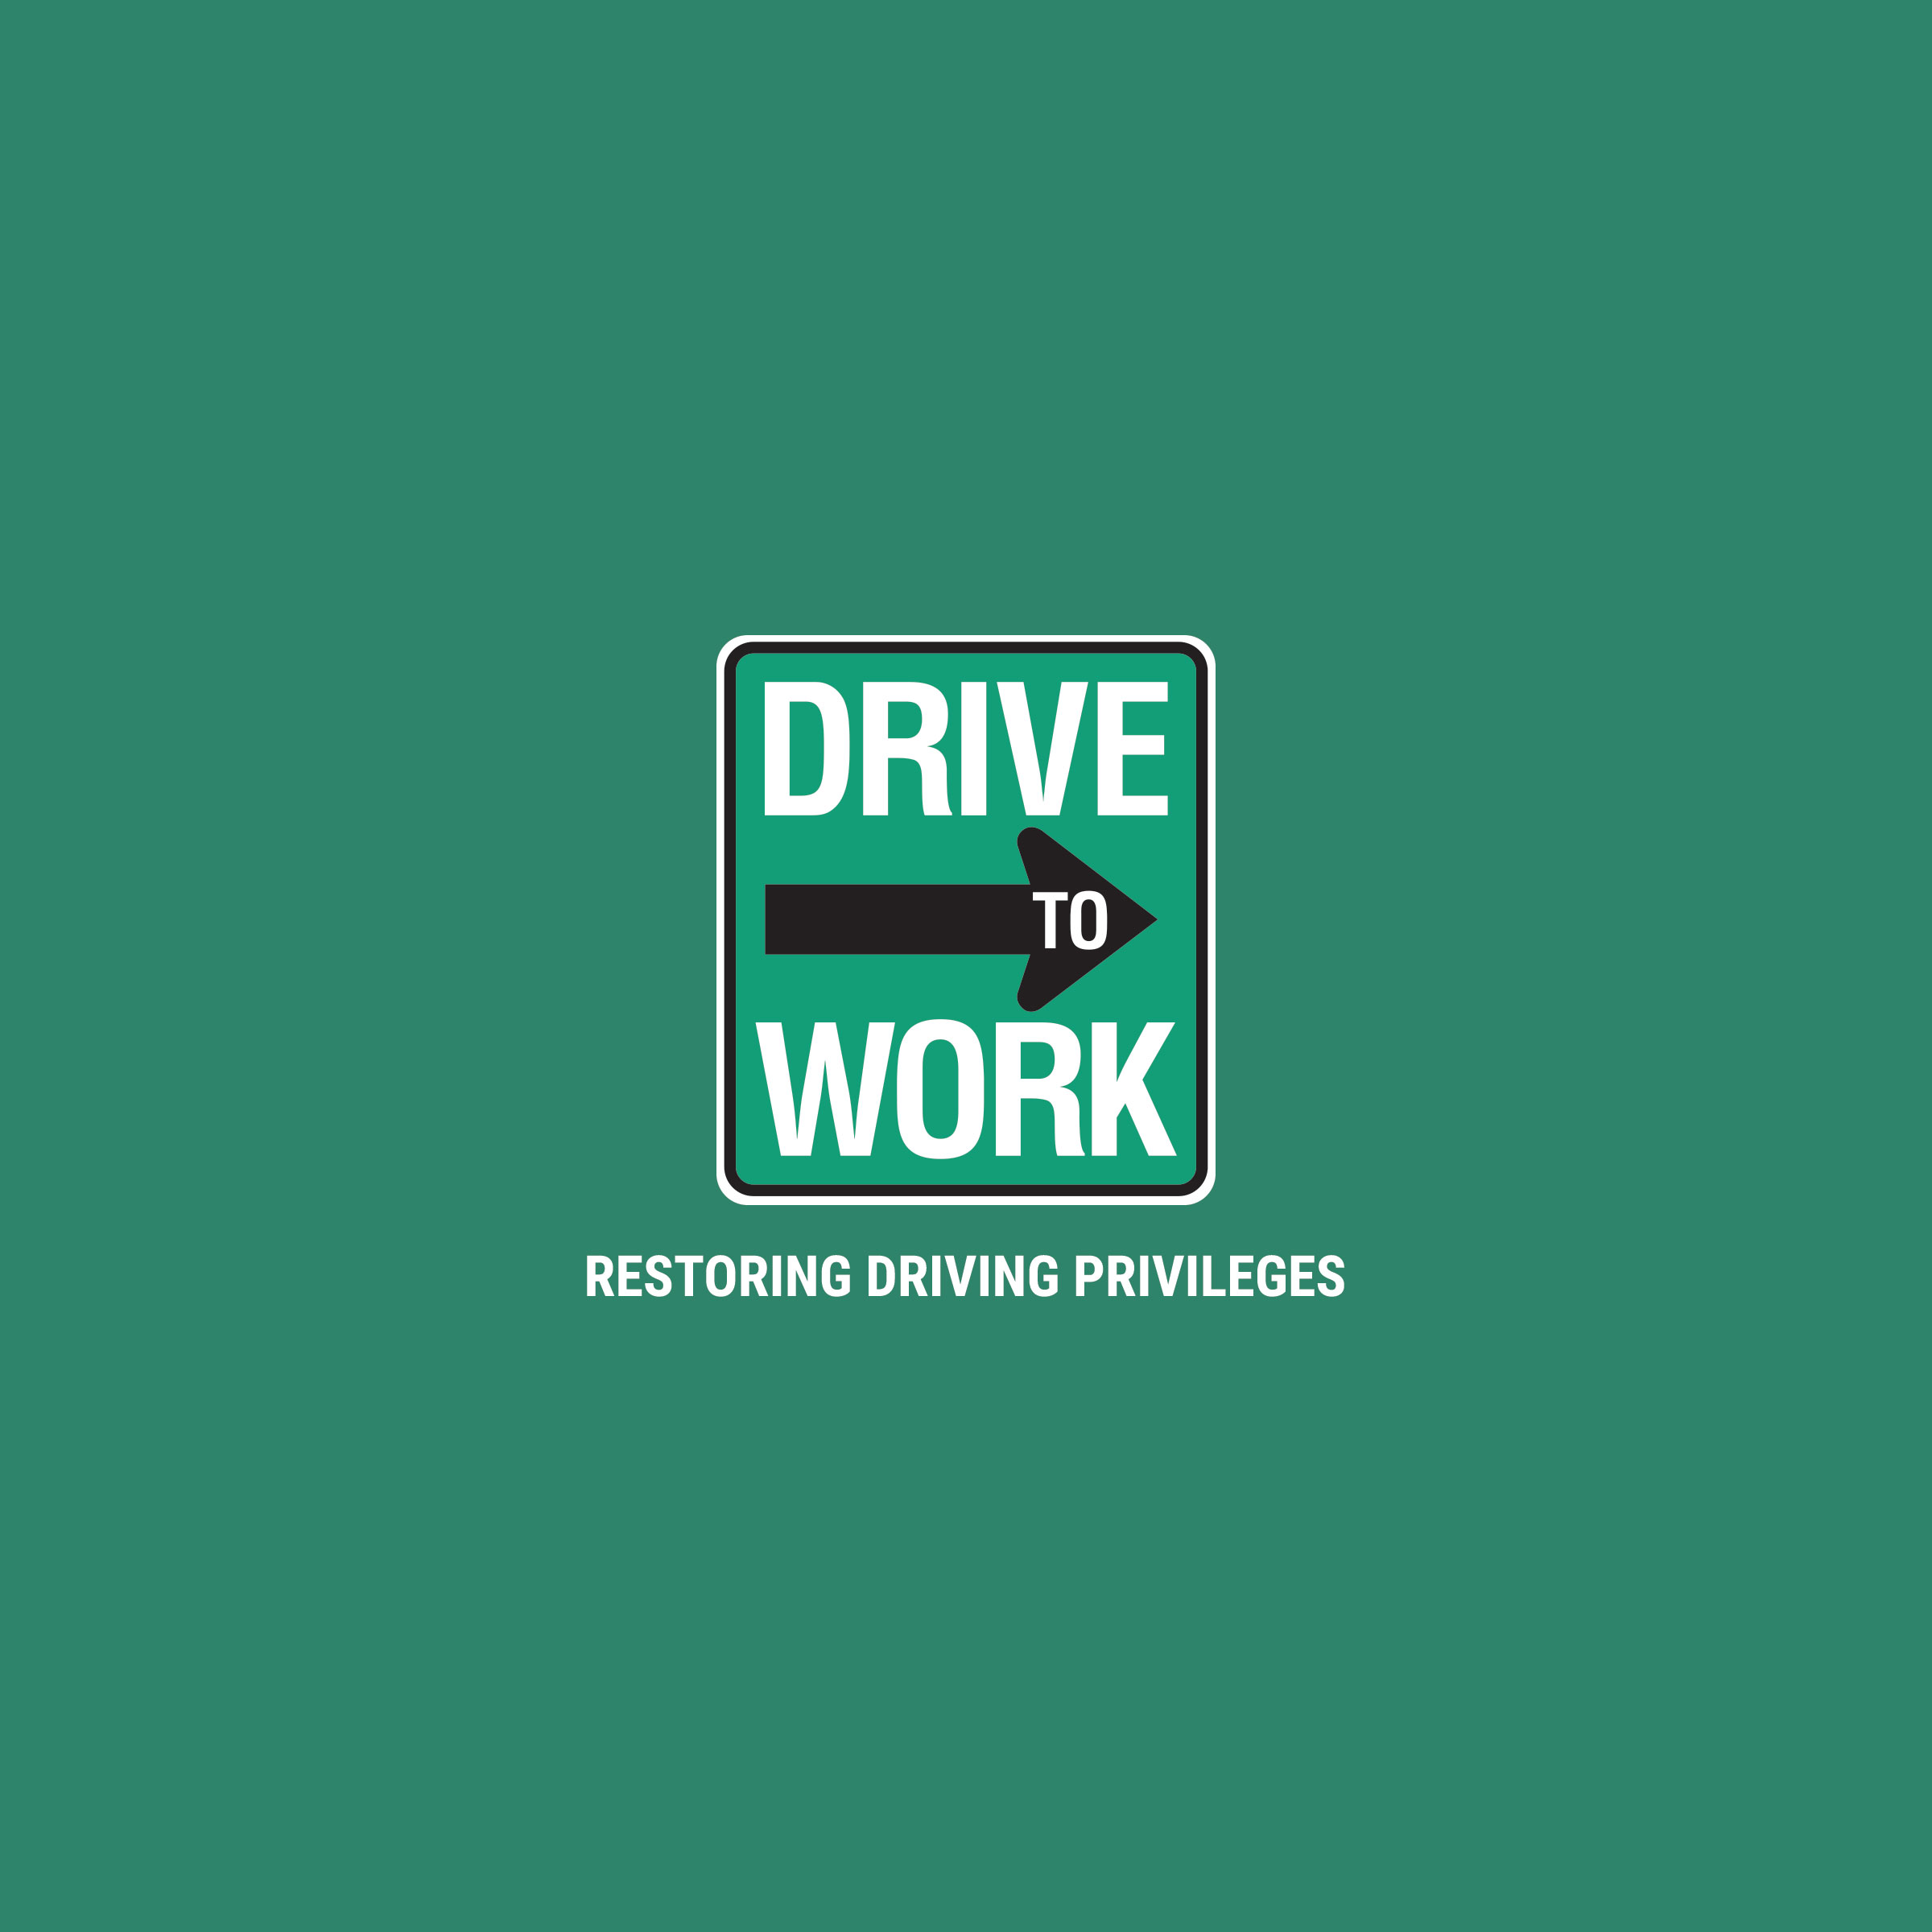 Drive Work Drive To Work Restoring Driving Privileges Driver License